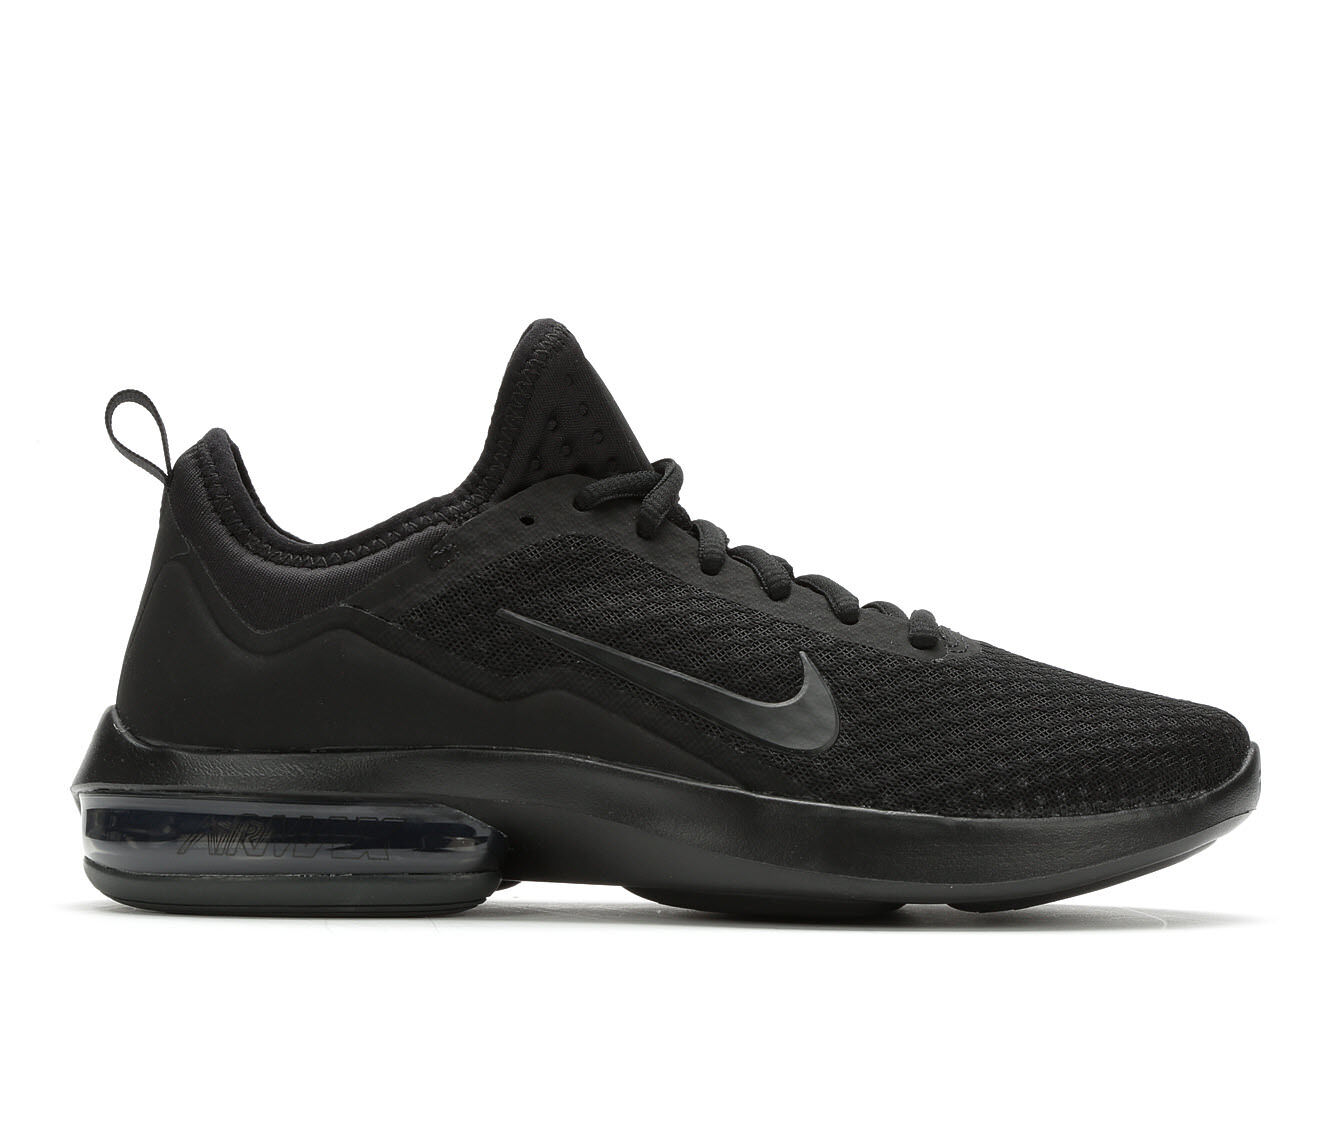 sports shoes 93bfc c47e0 nike kantara women Keep your game up to speed with the latest basketball  shoes.